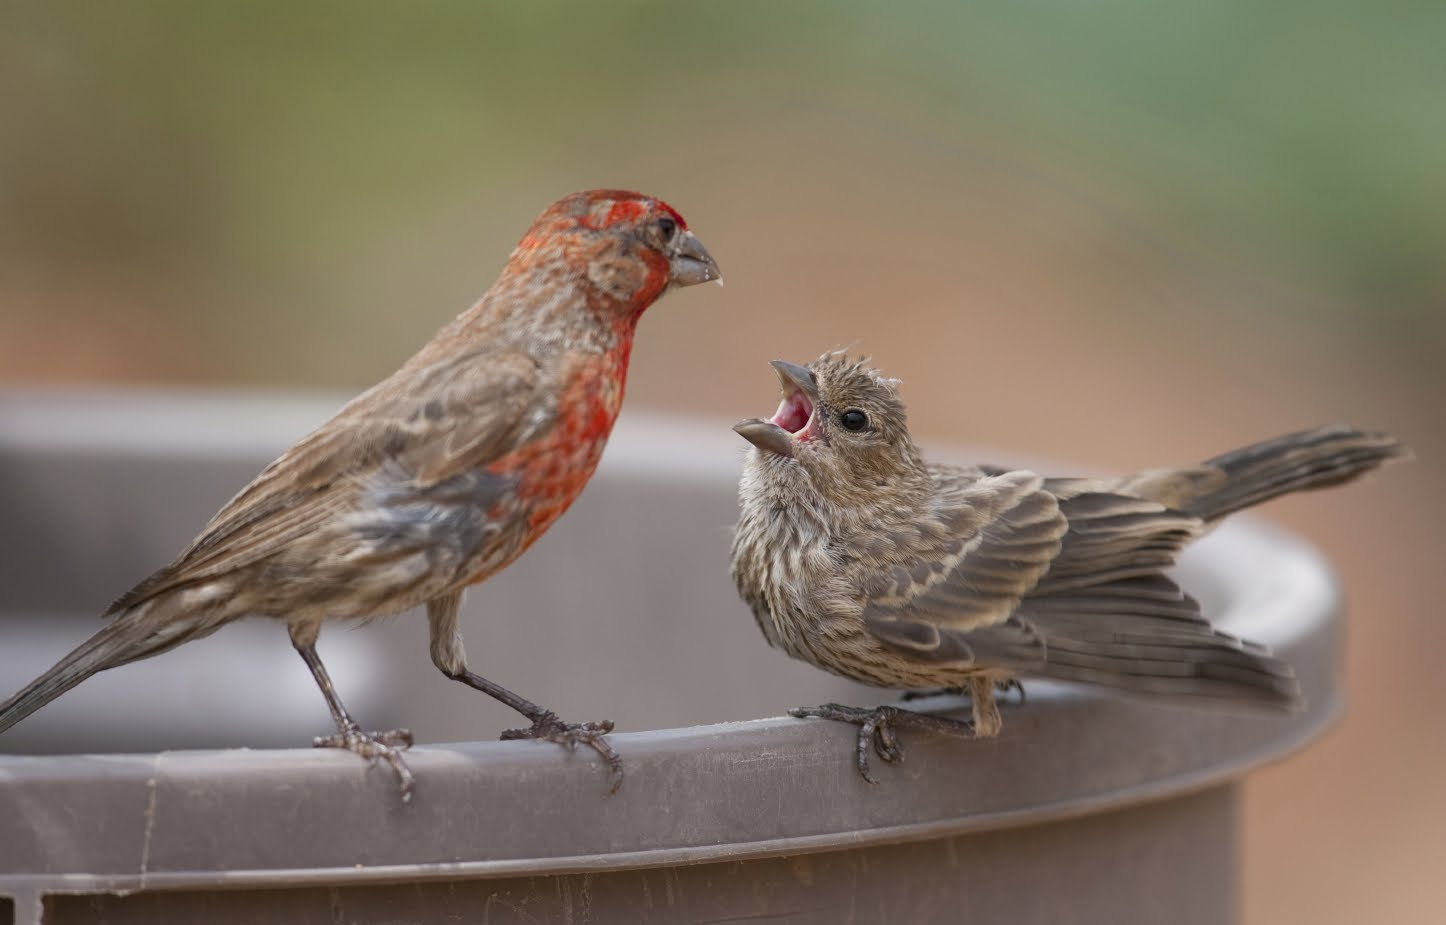 A baby house finch and its father. Just like humans, baby birds learn to vocalize by listening to adults. Credit: iStockphoto.com